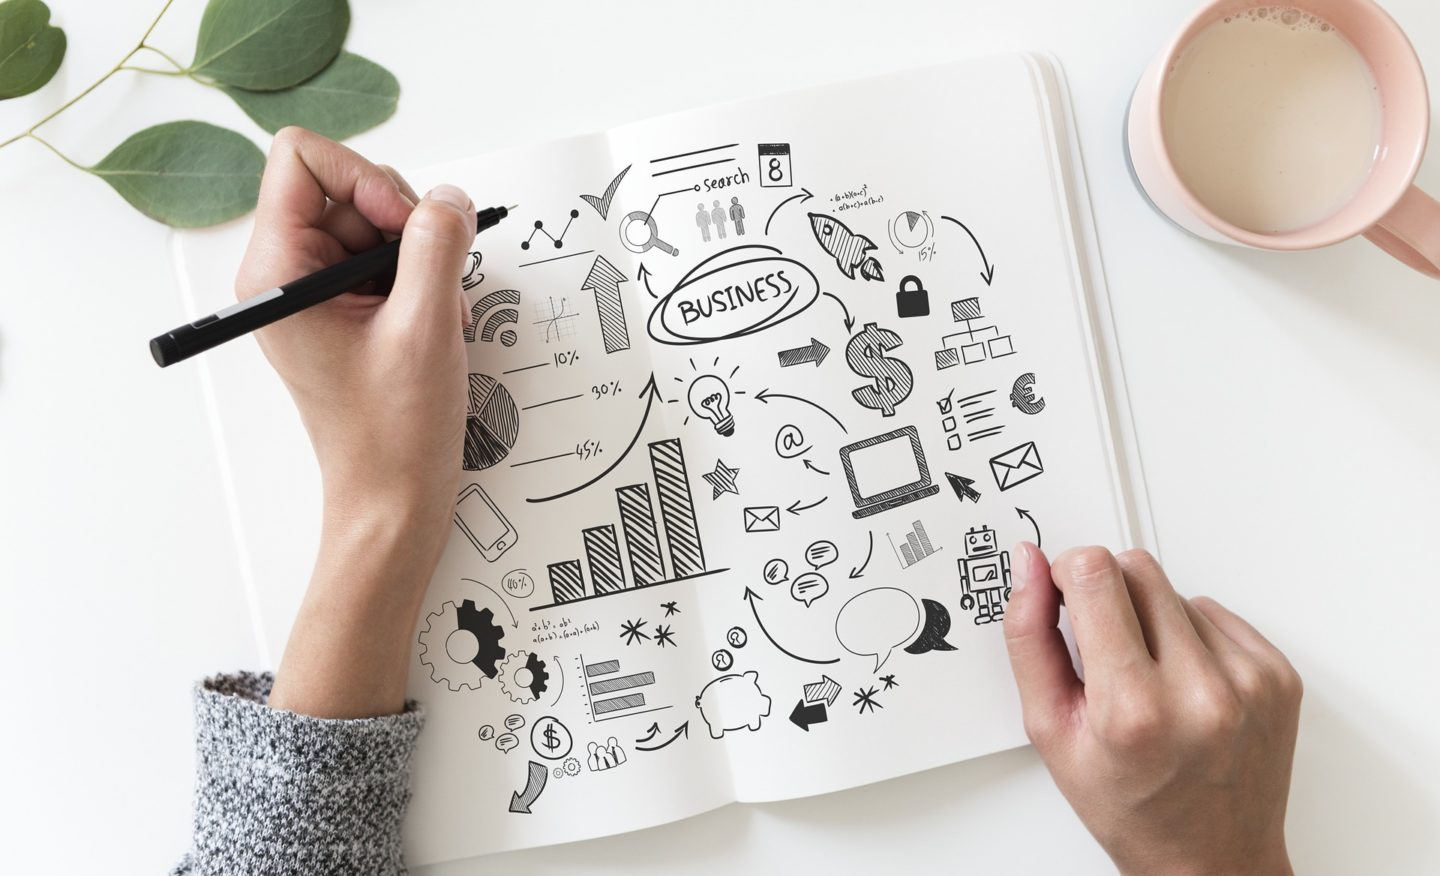 Amazing Ideas That Can Help Improve Your Business Right Now